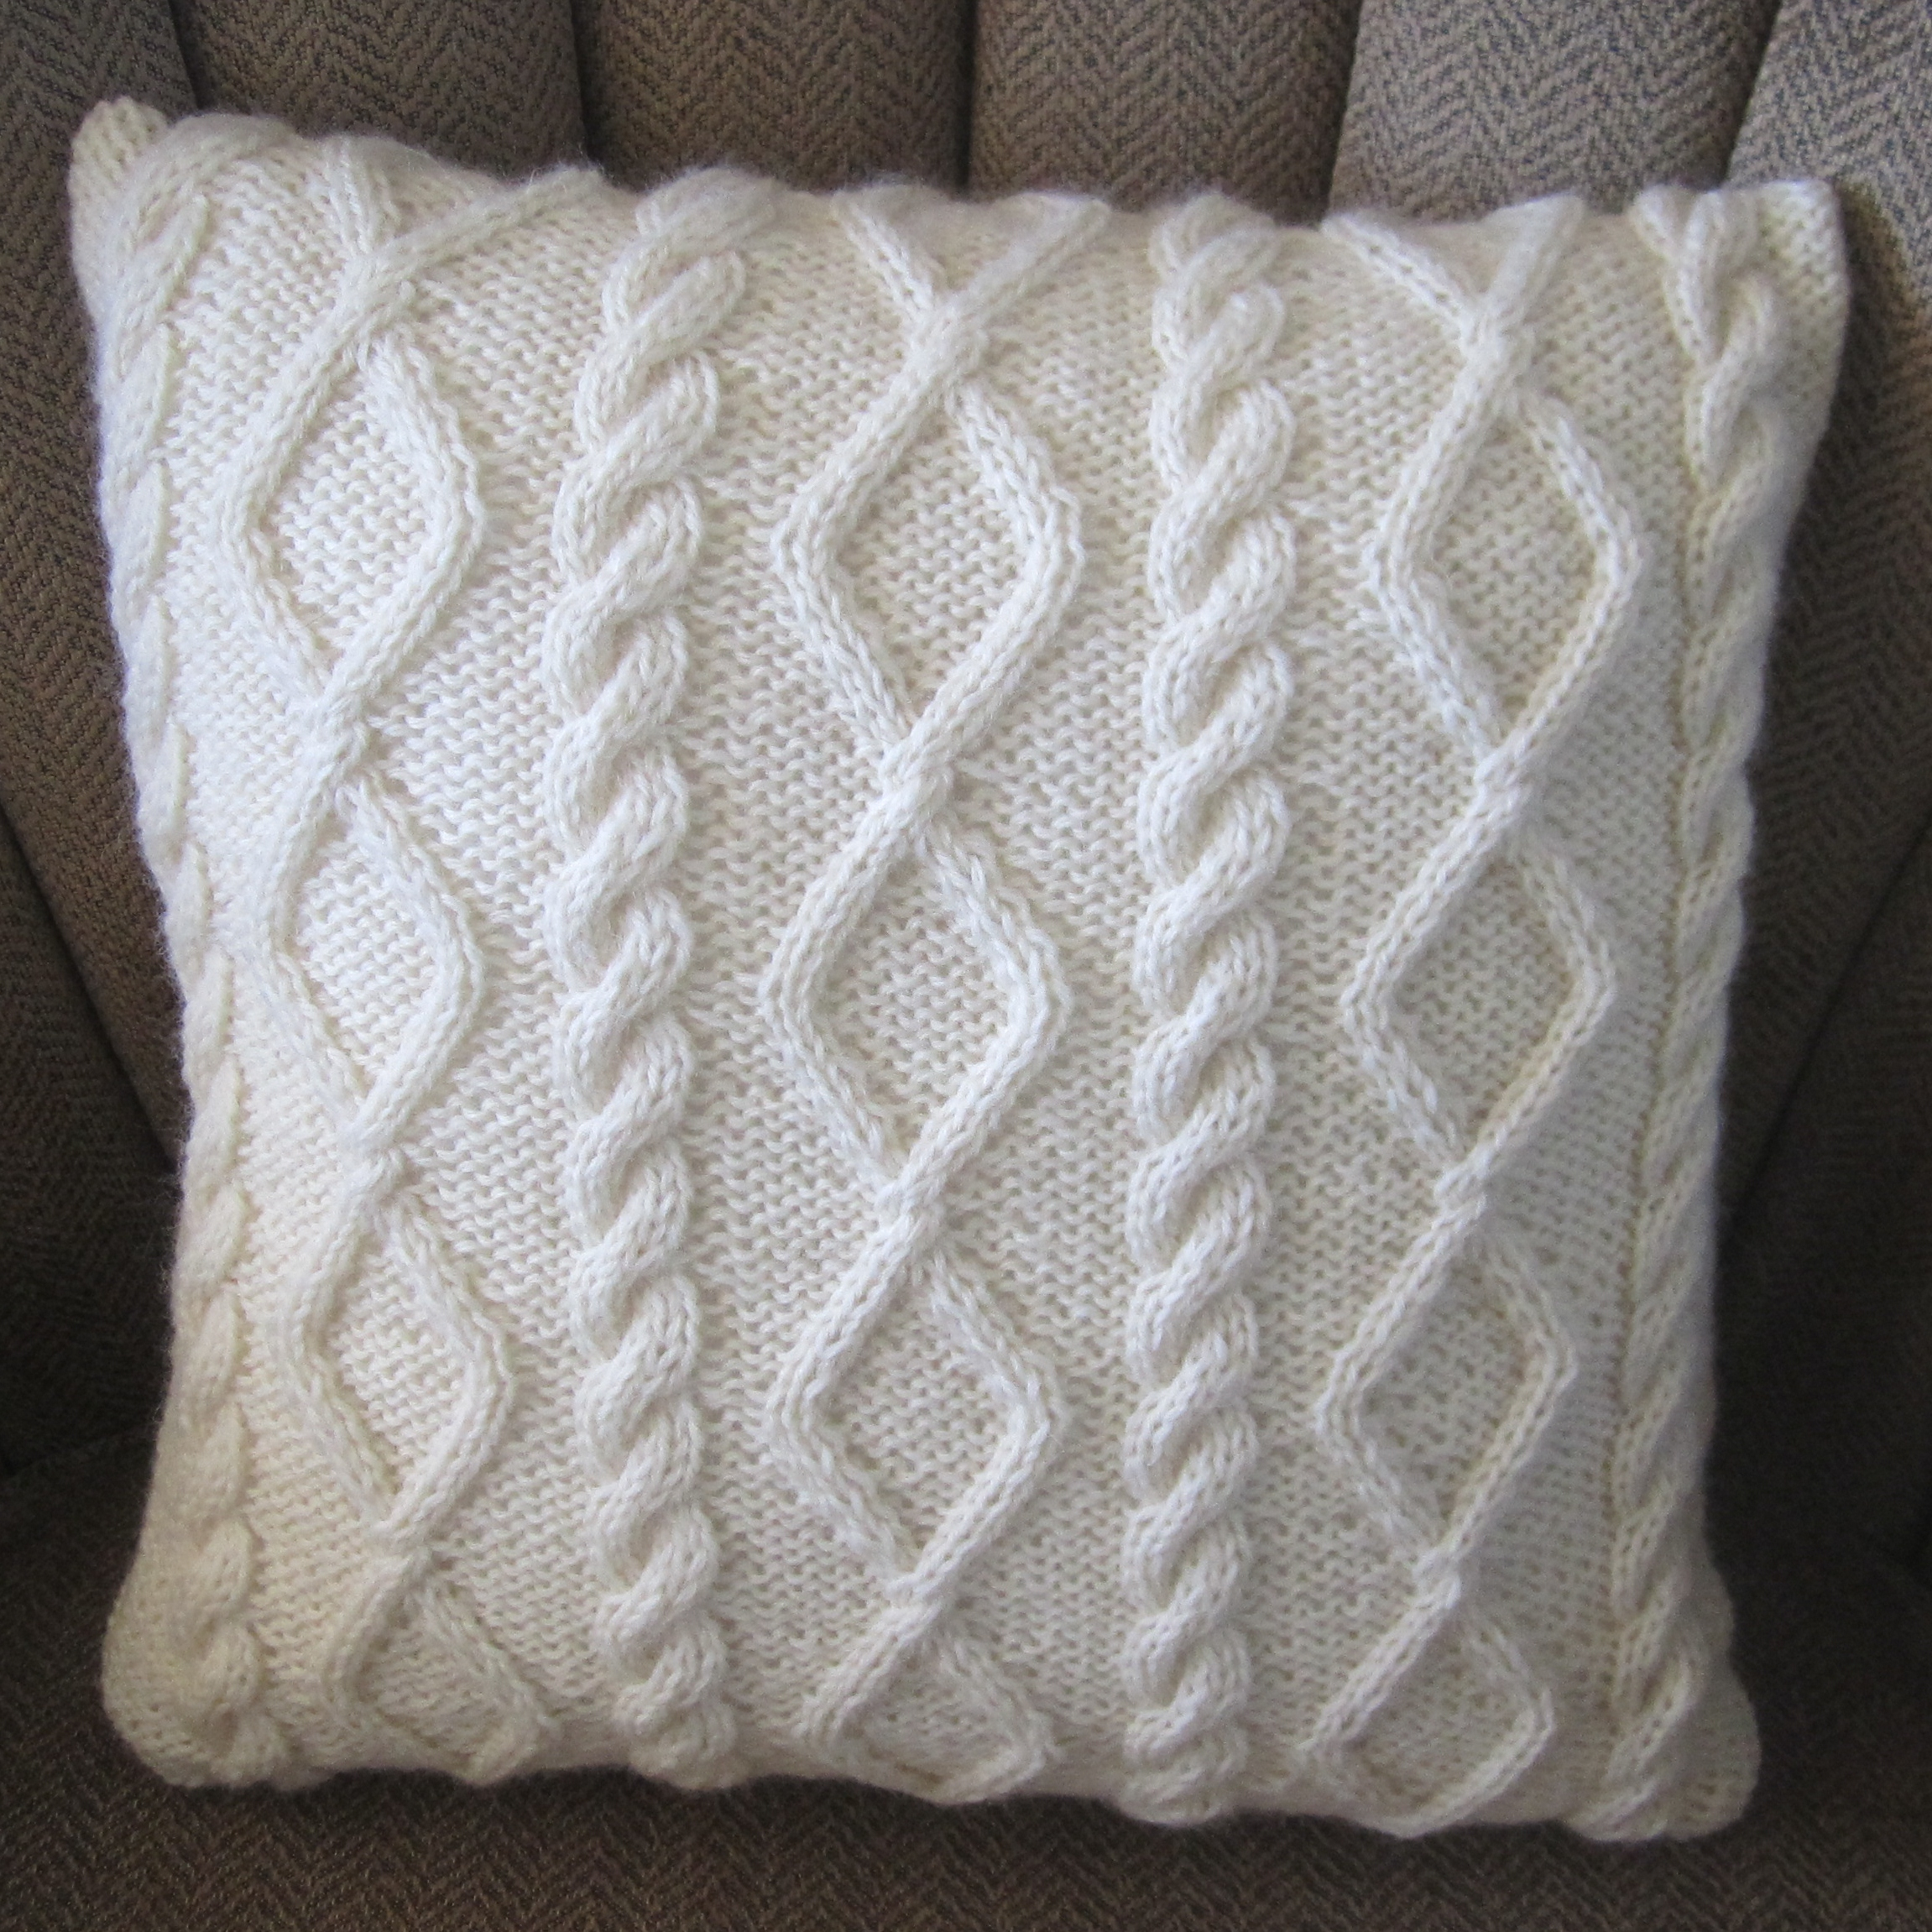 Knitting Pattern For Cushion Cover With Cables Diamonds And Cable 1640cm Cushion Cover Pdf Knitting Pattern